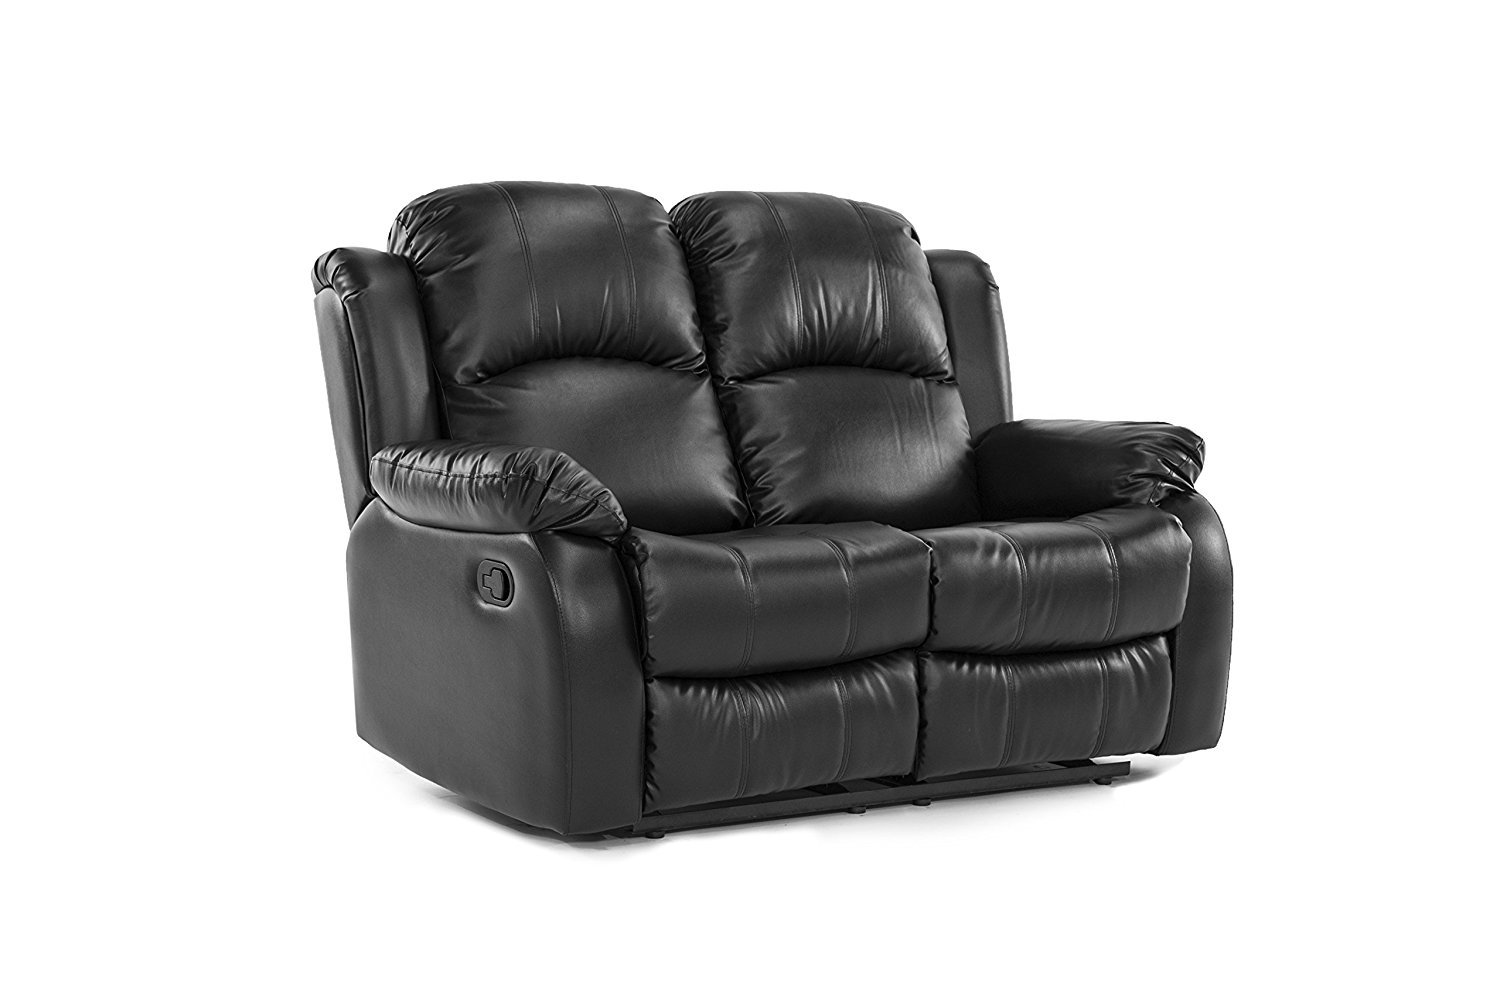 Elegant Double Reclining Loveseat Bonded Leather Living Room Recliner Black Rochester